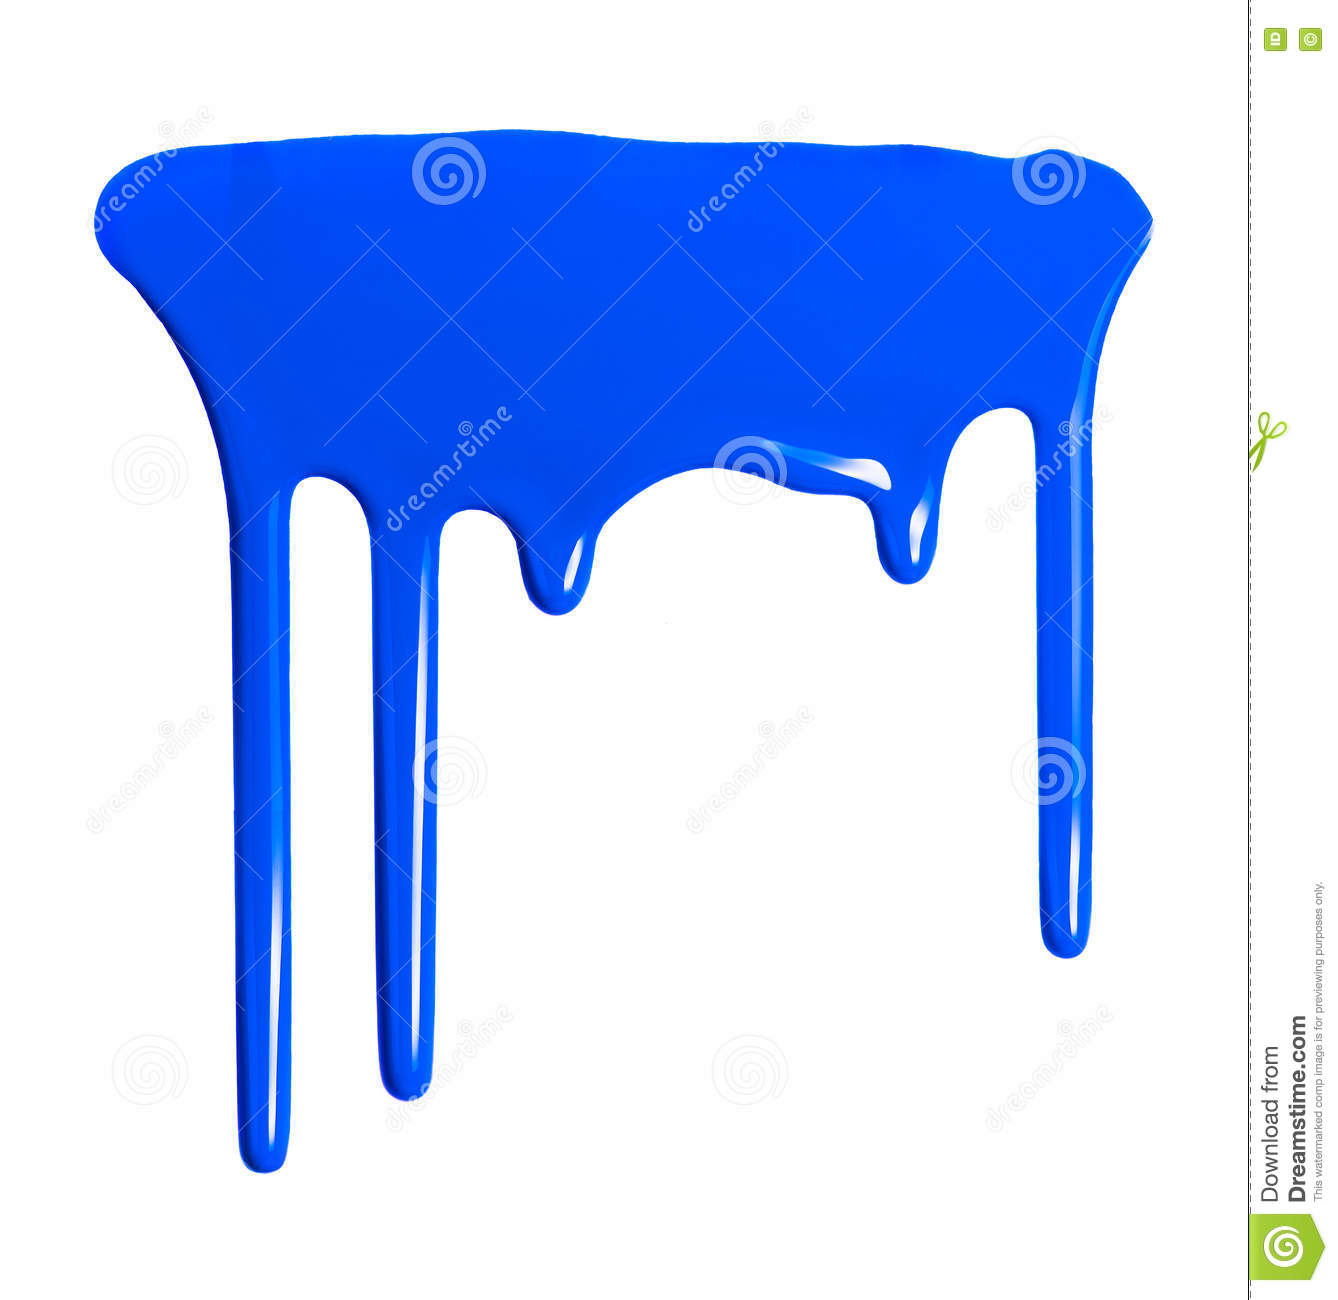 how to draw dripping paint